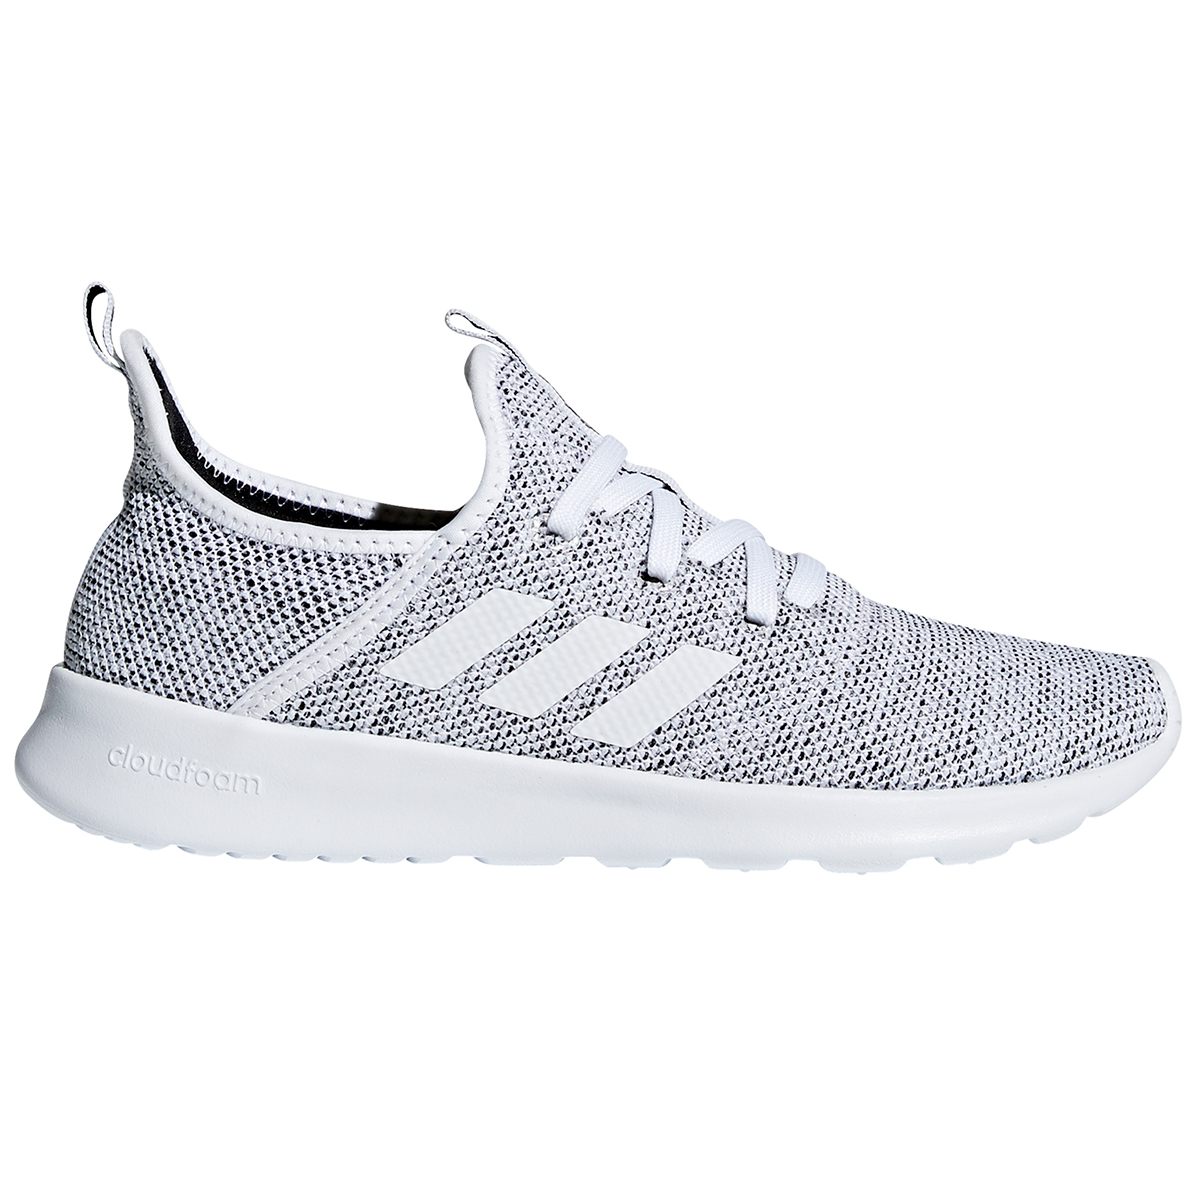 Adidas Women's Cloudfoam Pure Running Shoes - White, 6.5